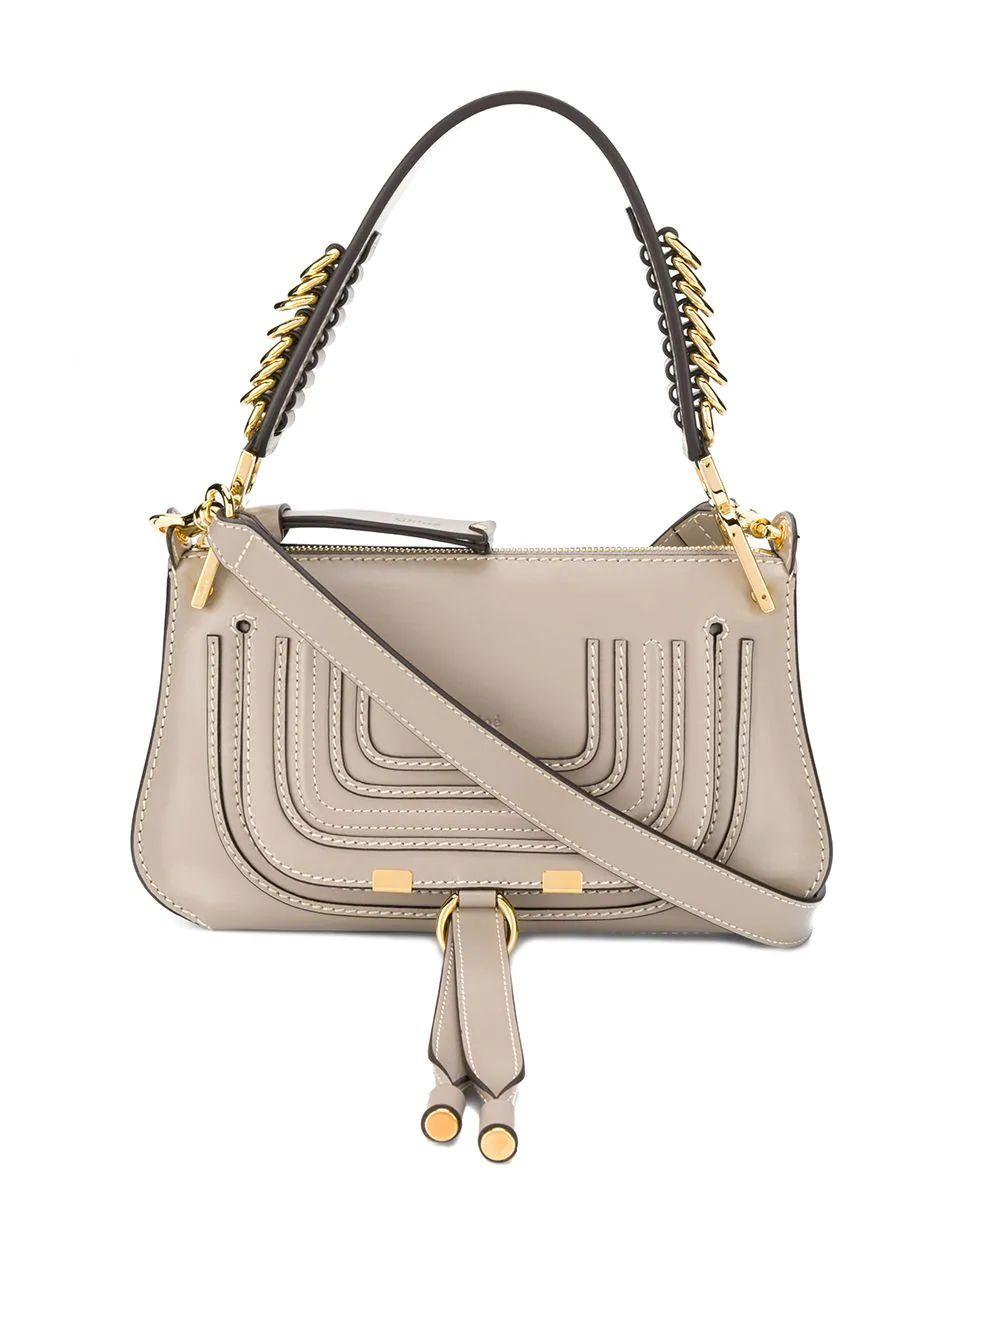 Marcie Small Leather Saddle Bag